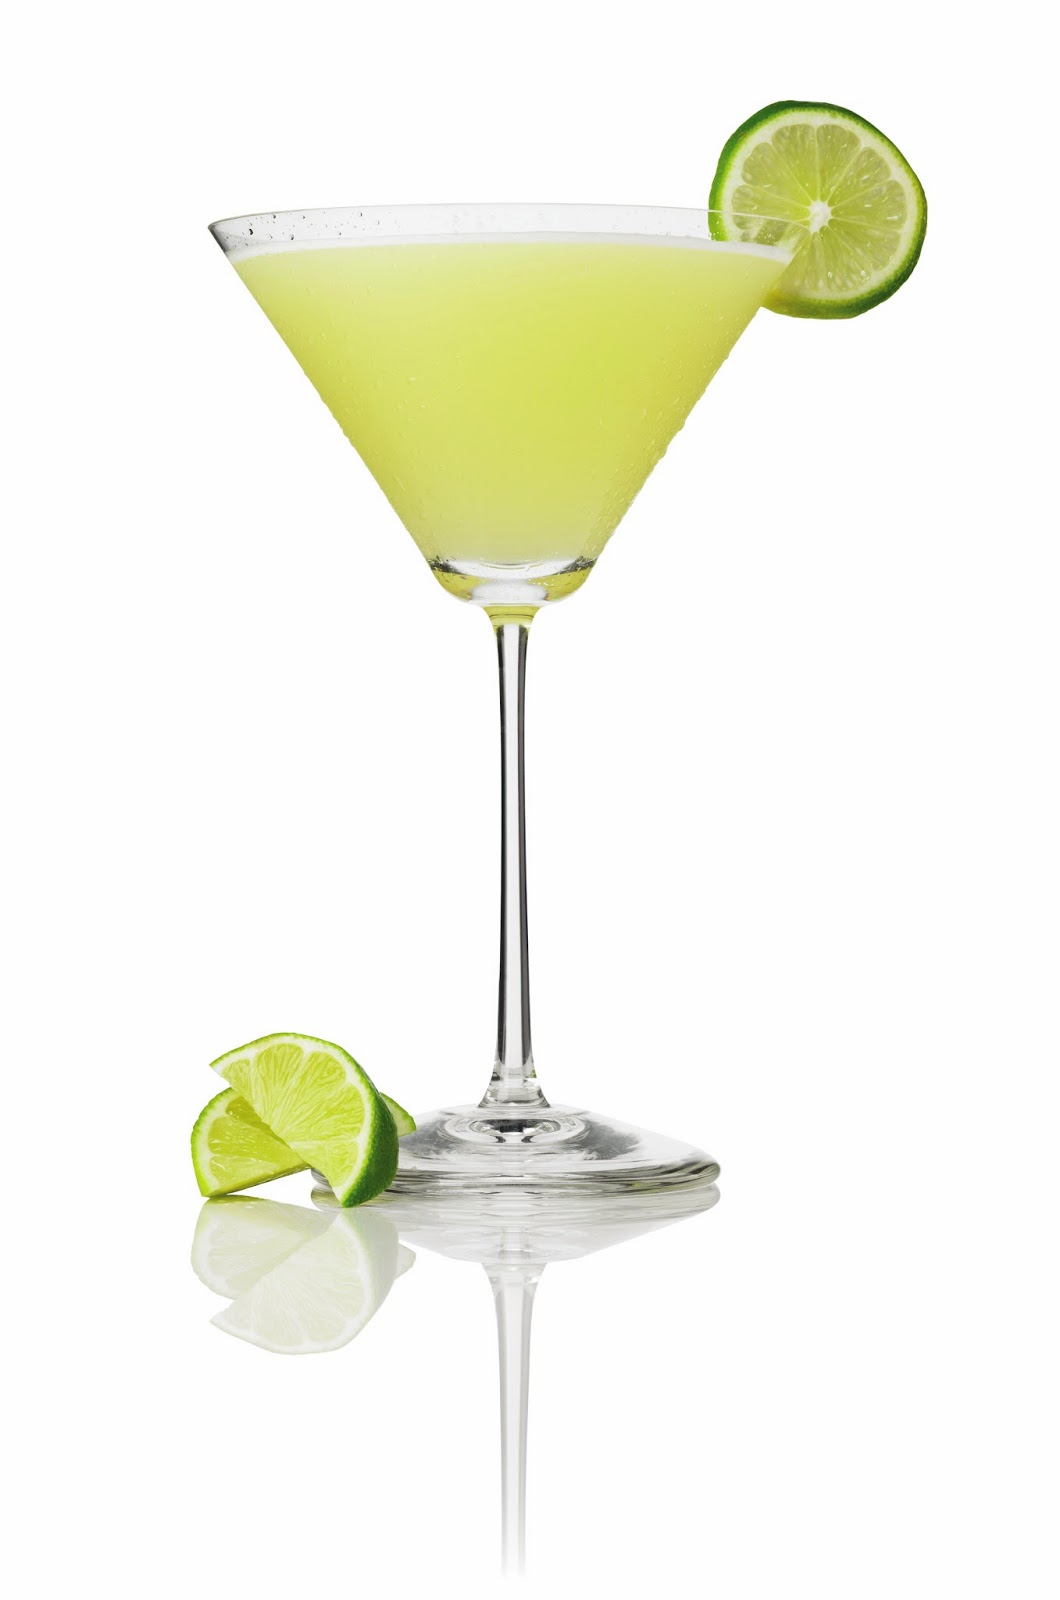 ... original Margarita, but today every bartender has their own unique